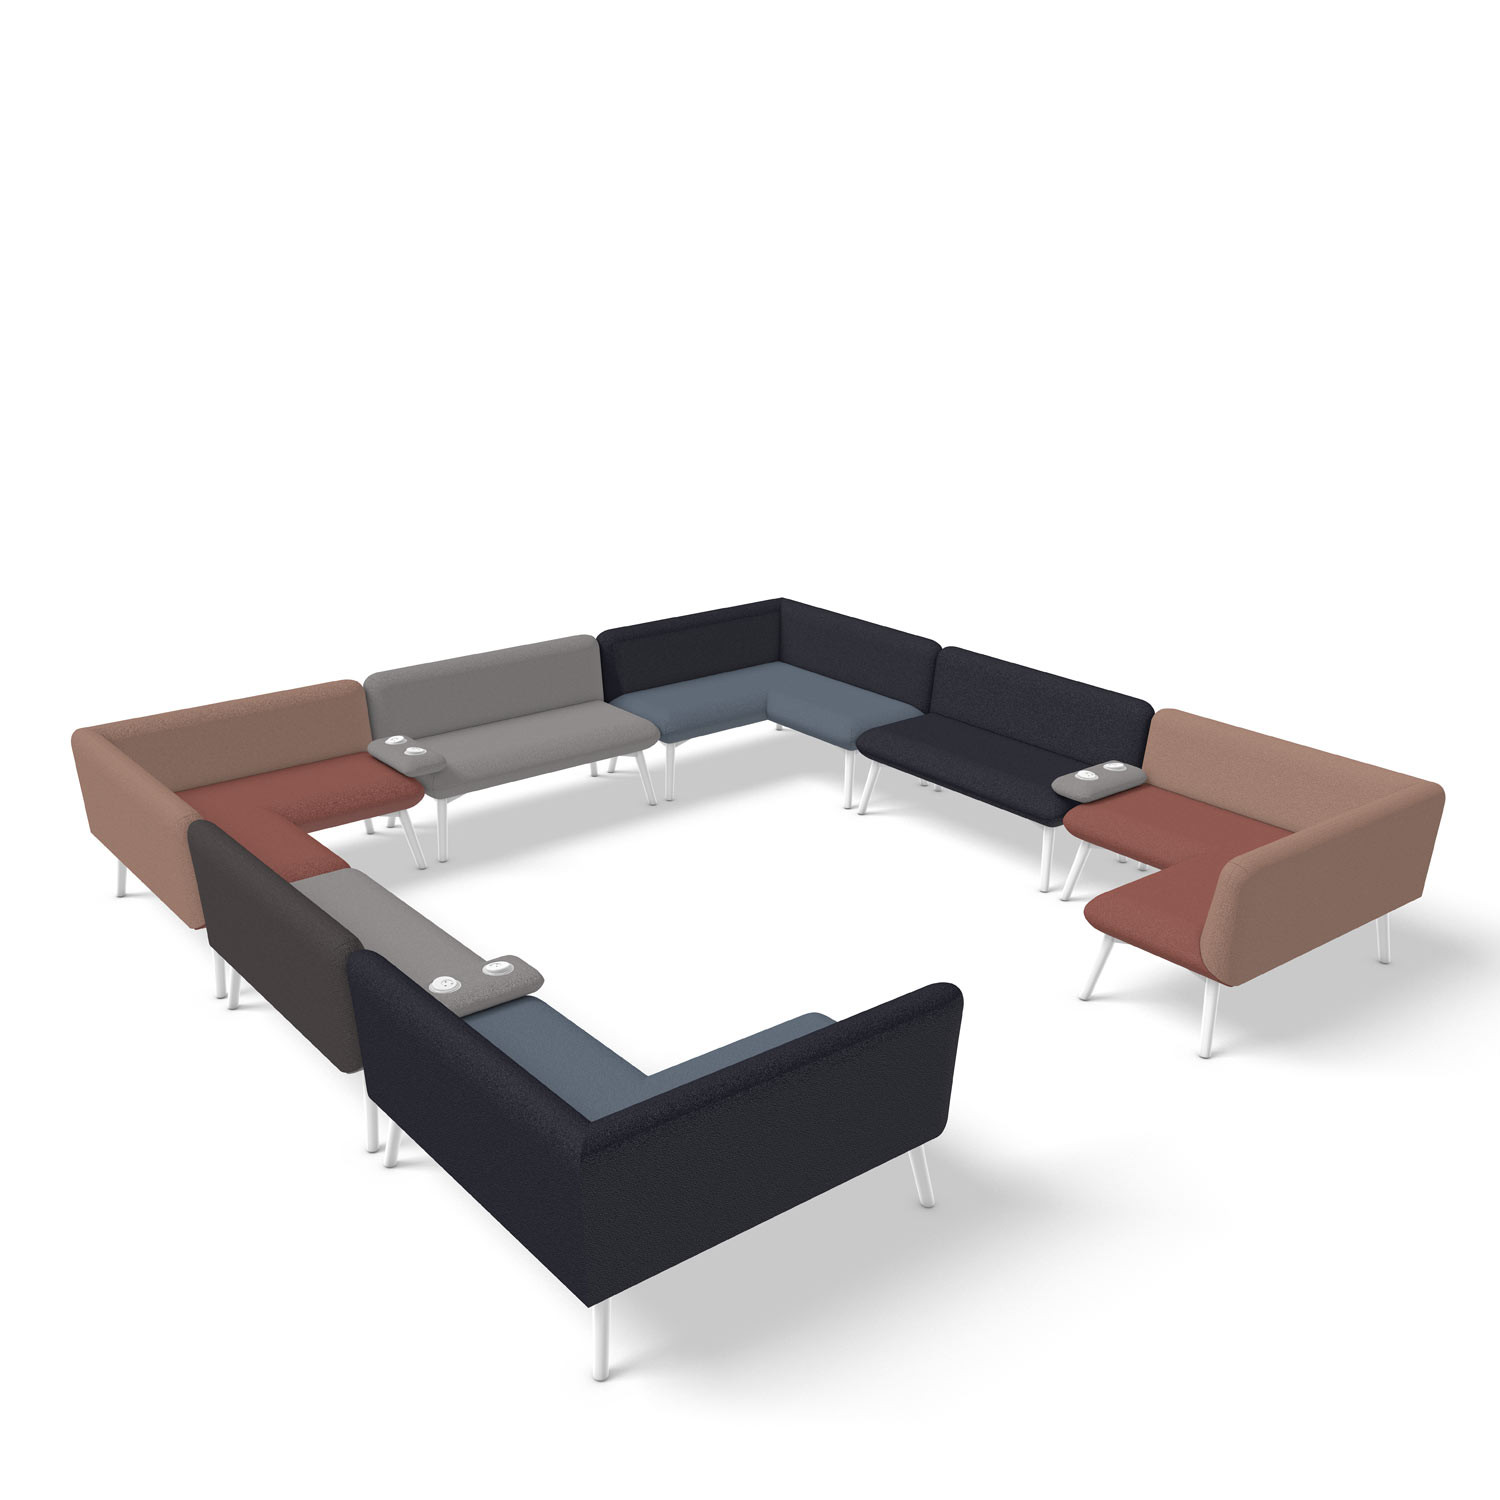 Myriad Sofa Work Place Huddle Solution